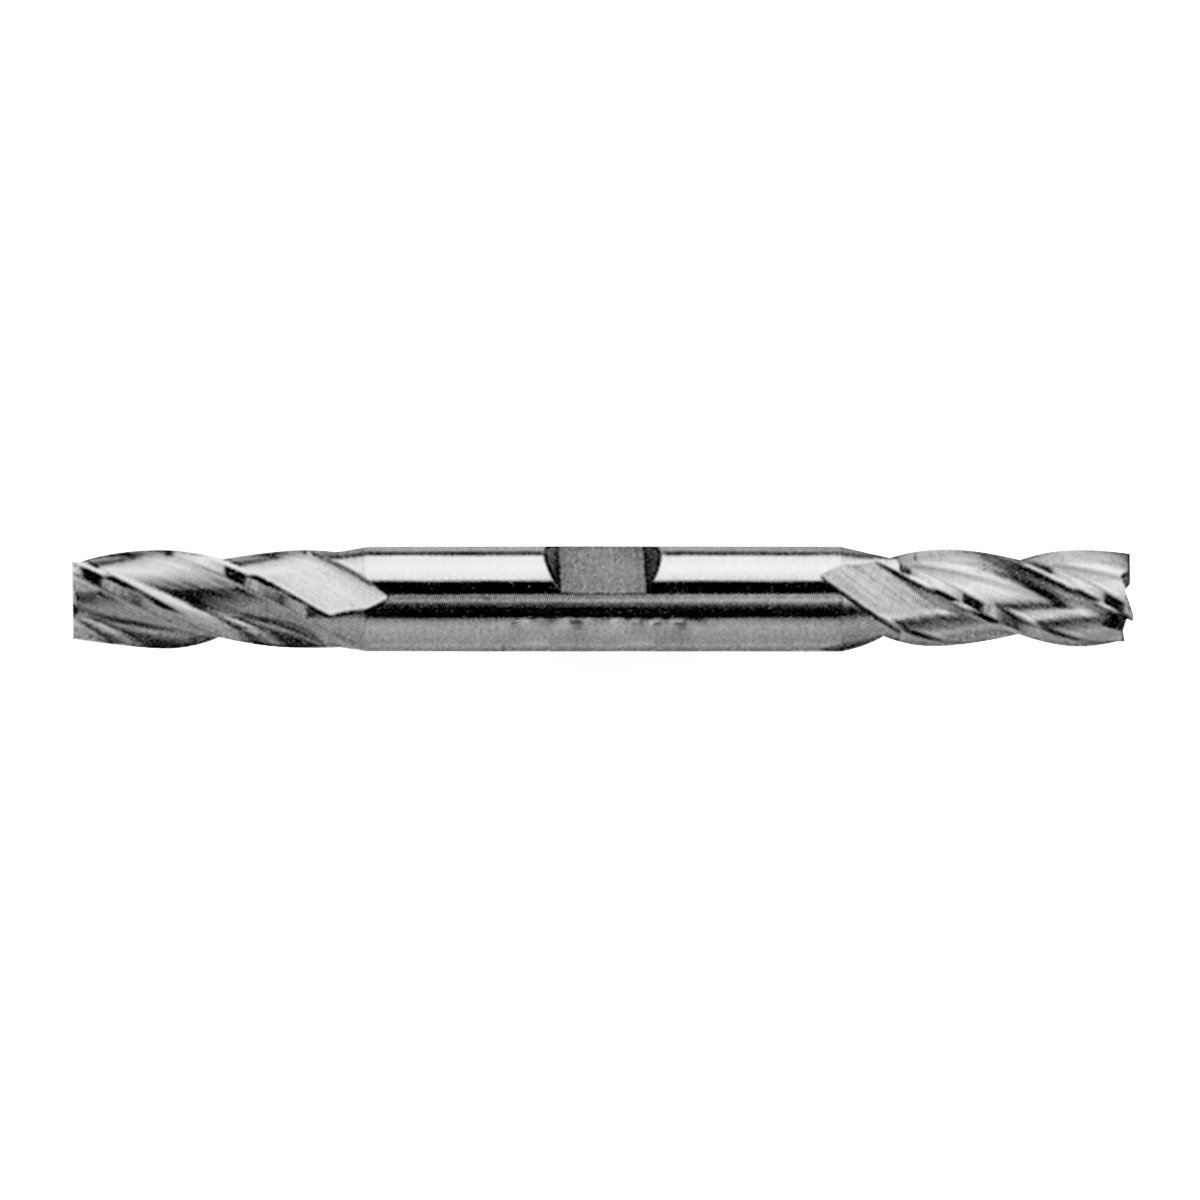 """End mill 3//4/""""x3//4/"""" 4 Flutes center cutting HSS grounded from sold stock"""